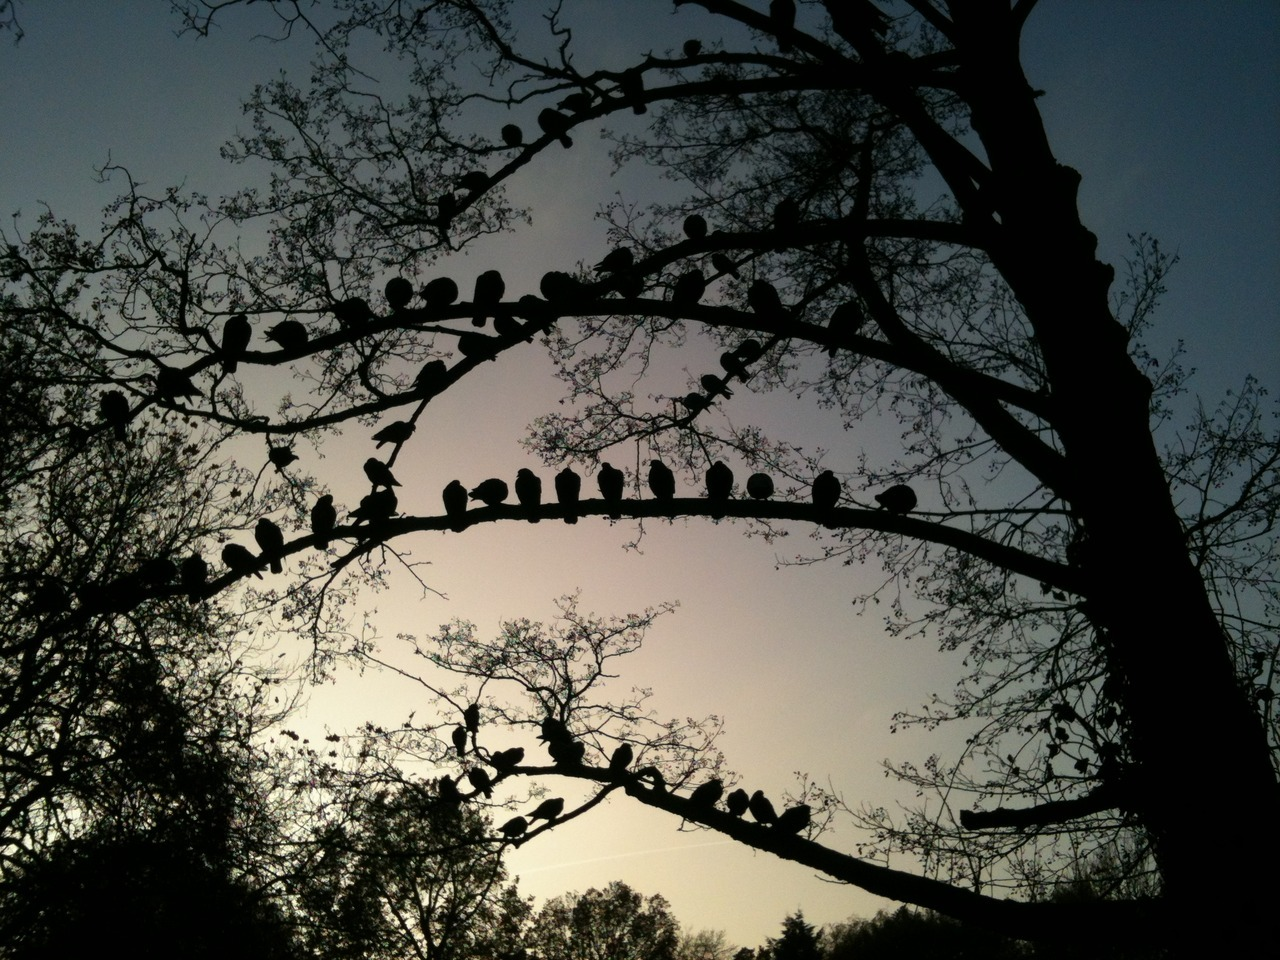 Pigeons roosting in Peckham Rye on a chilly November afternoon.